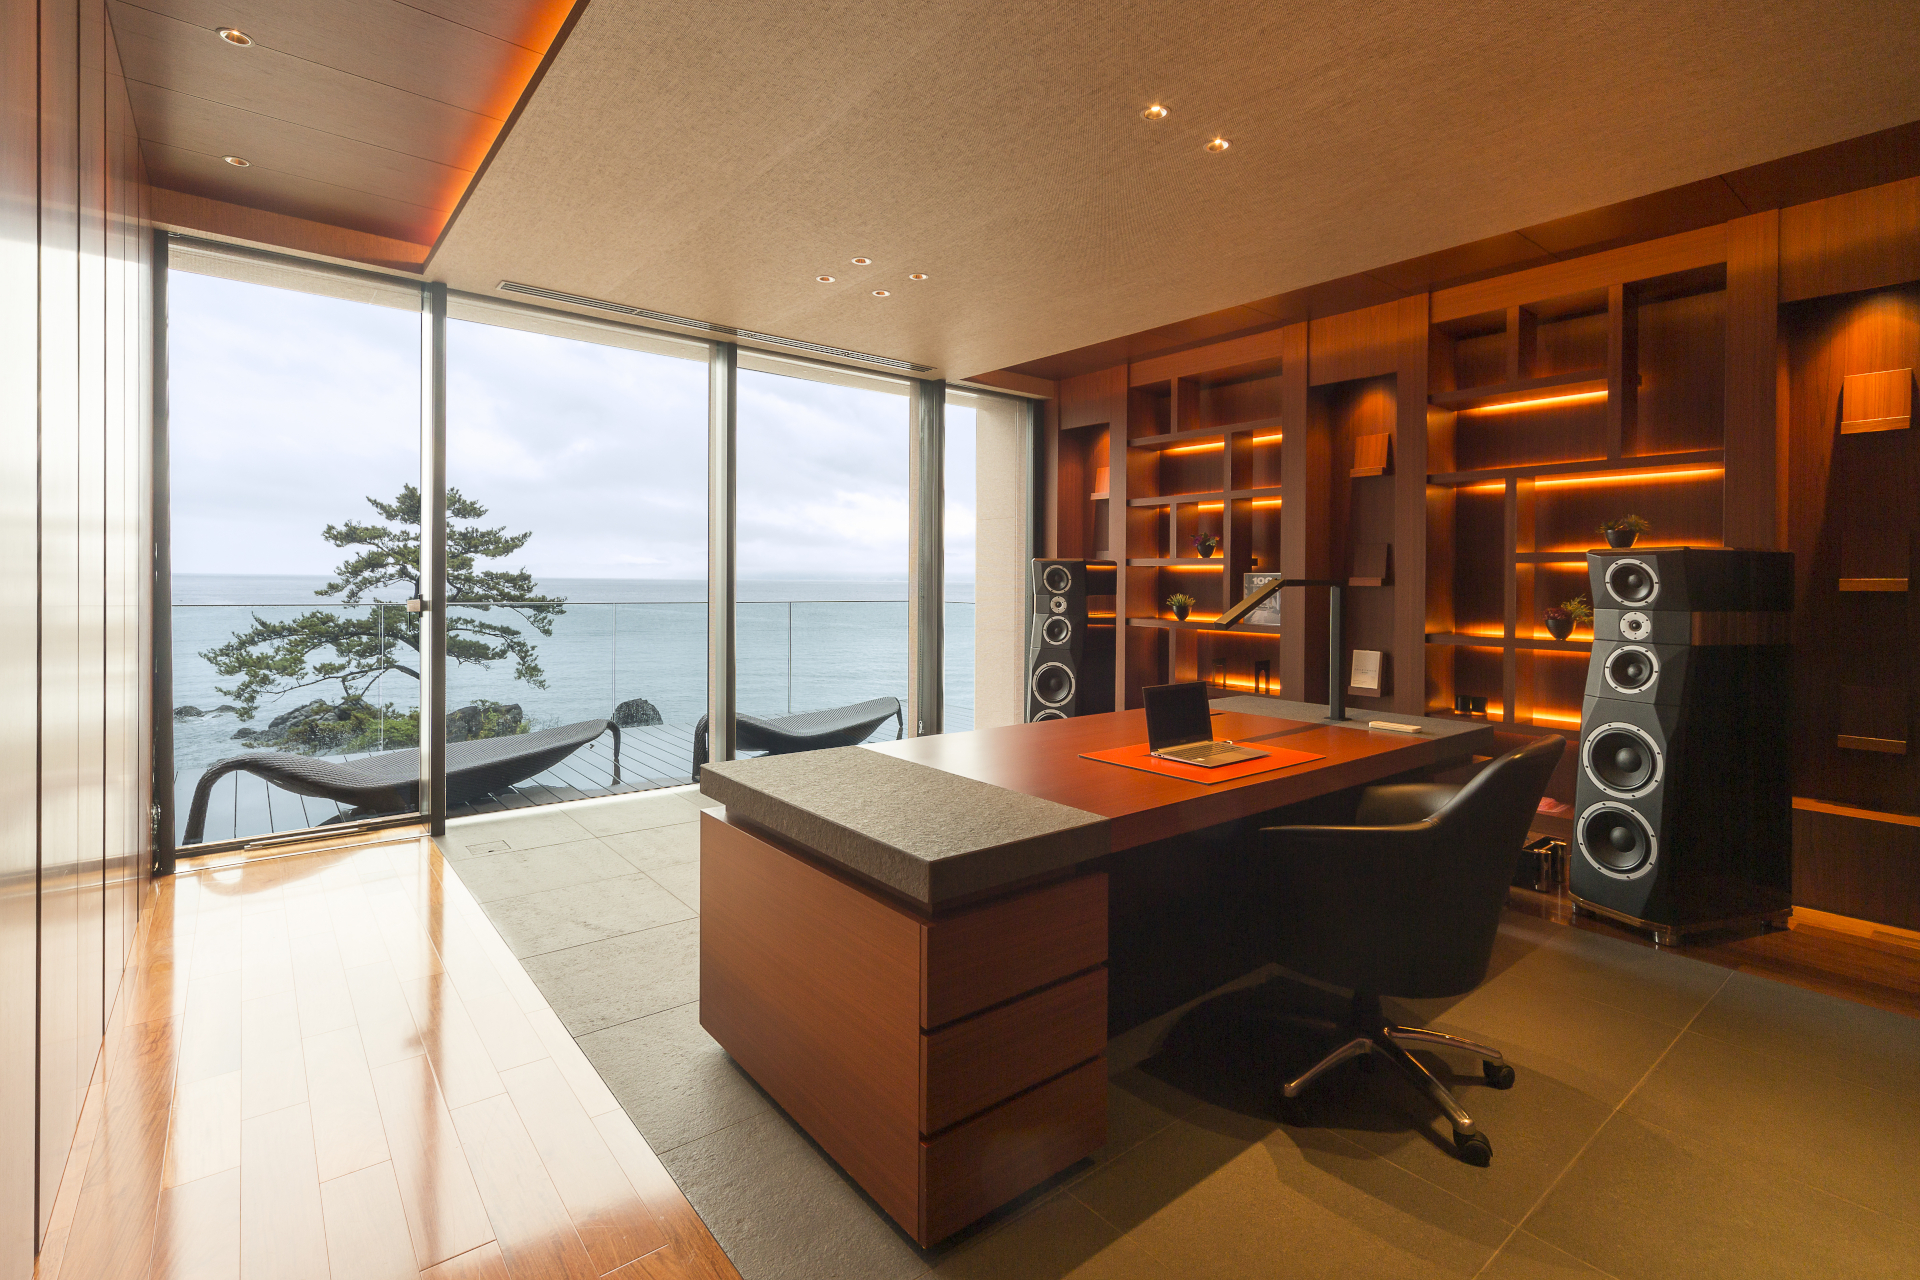 This contemporary estate in Ashigarashimo-Gun, Japan, has a contemporary office with recessed lighting, bookshelves, and surround-sound speakers. Sliding glass doors open to a deck facing Sagami Bay.